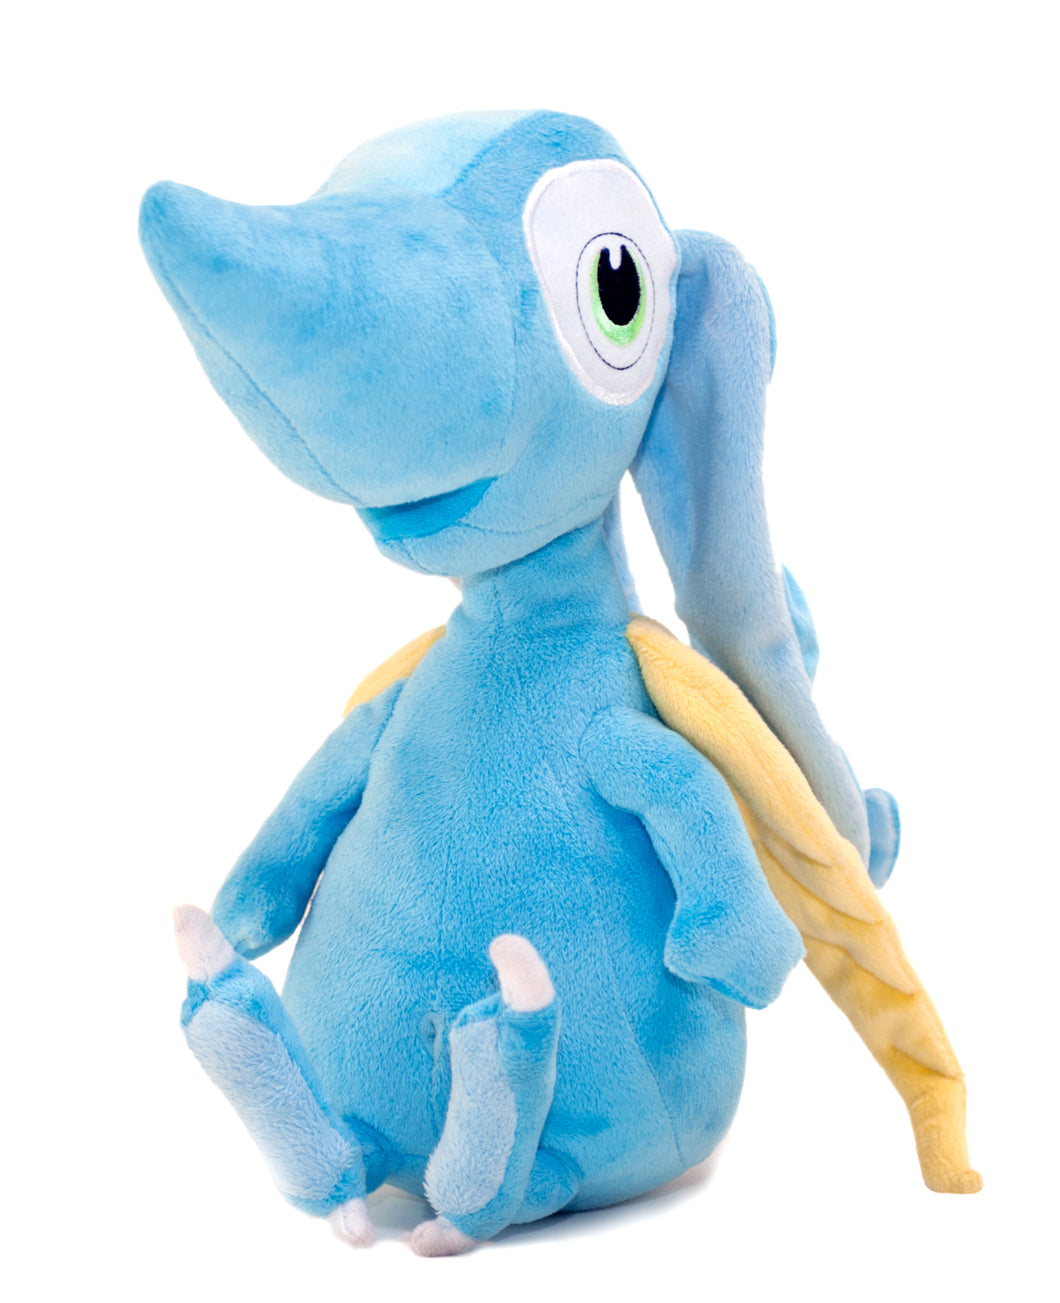 Wince - The Monster of Worry - WorryWoo Plush Toy - Children's Books and Toys - Spiffy